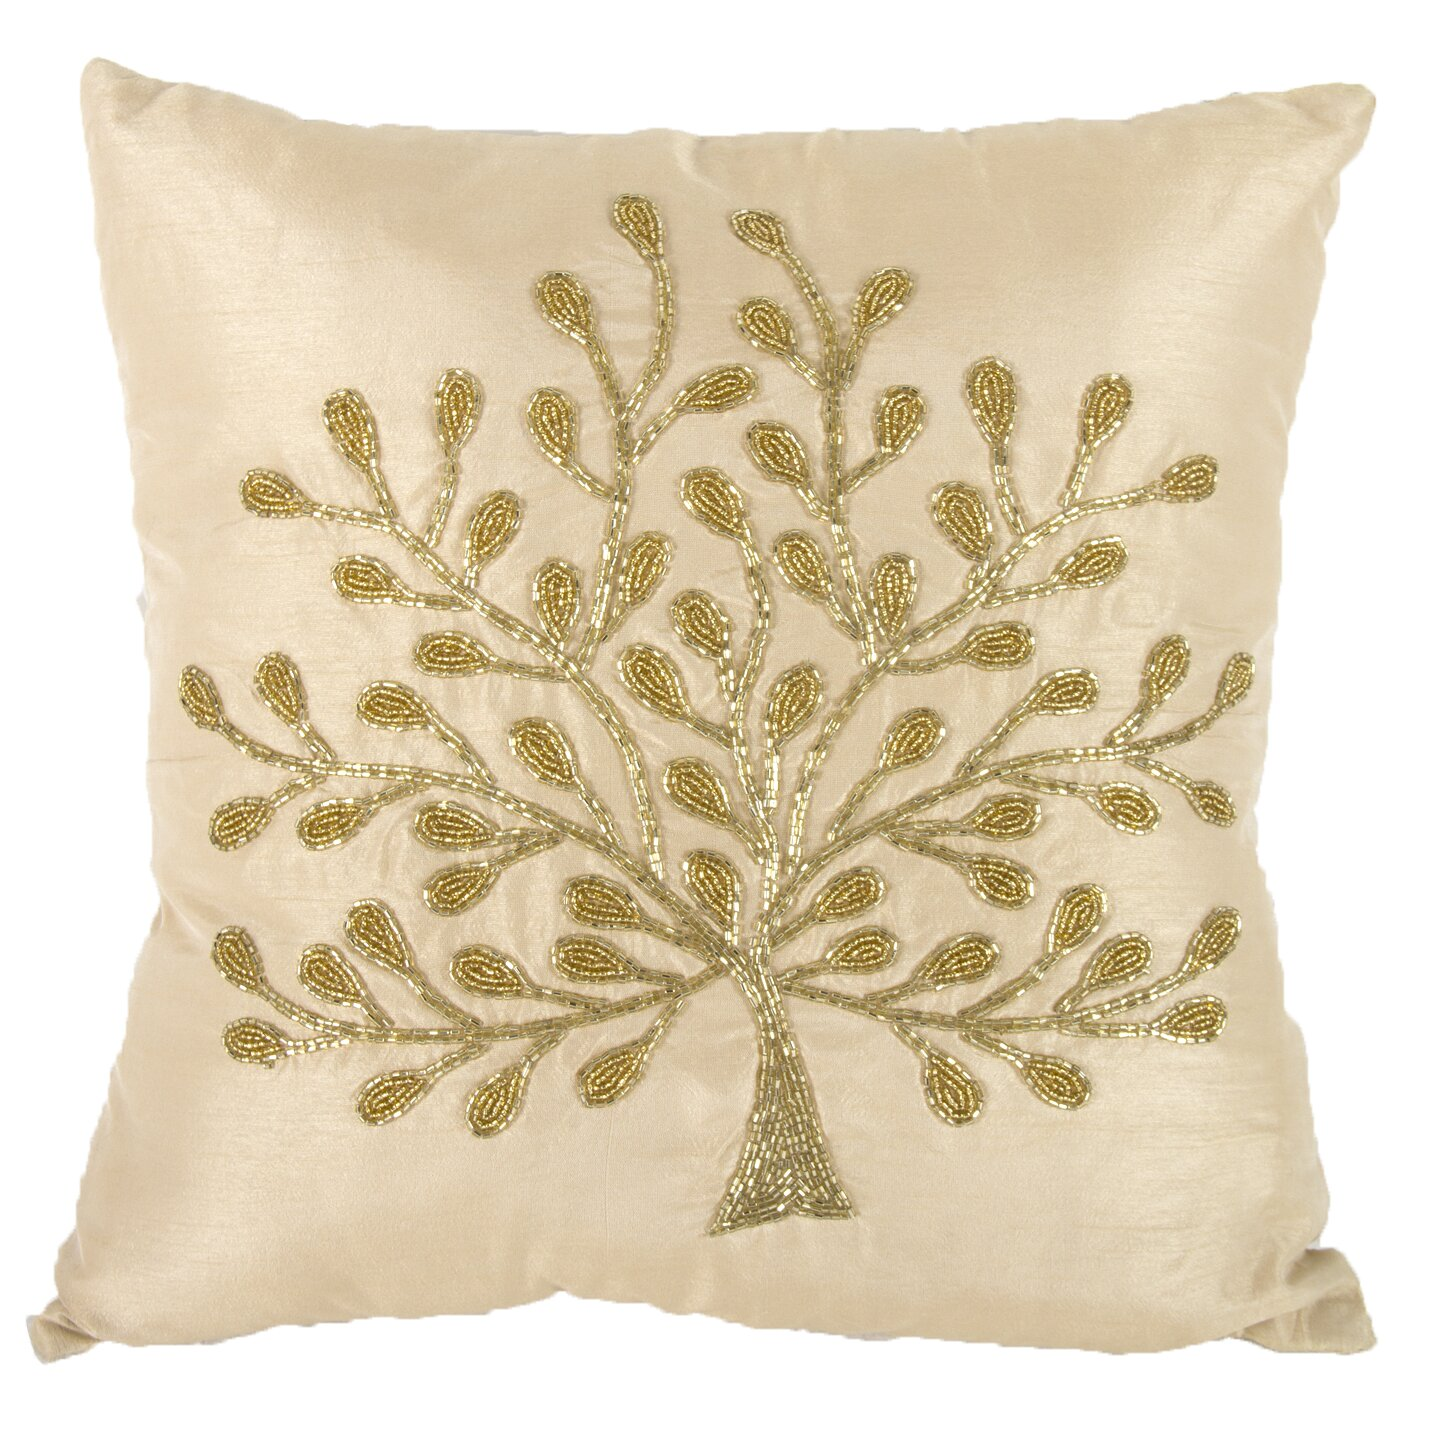 Tree Of Life Fireplace Surround: A&B Home Tree Of Life Pillow & Reviews